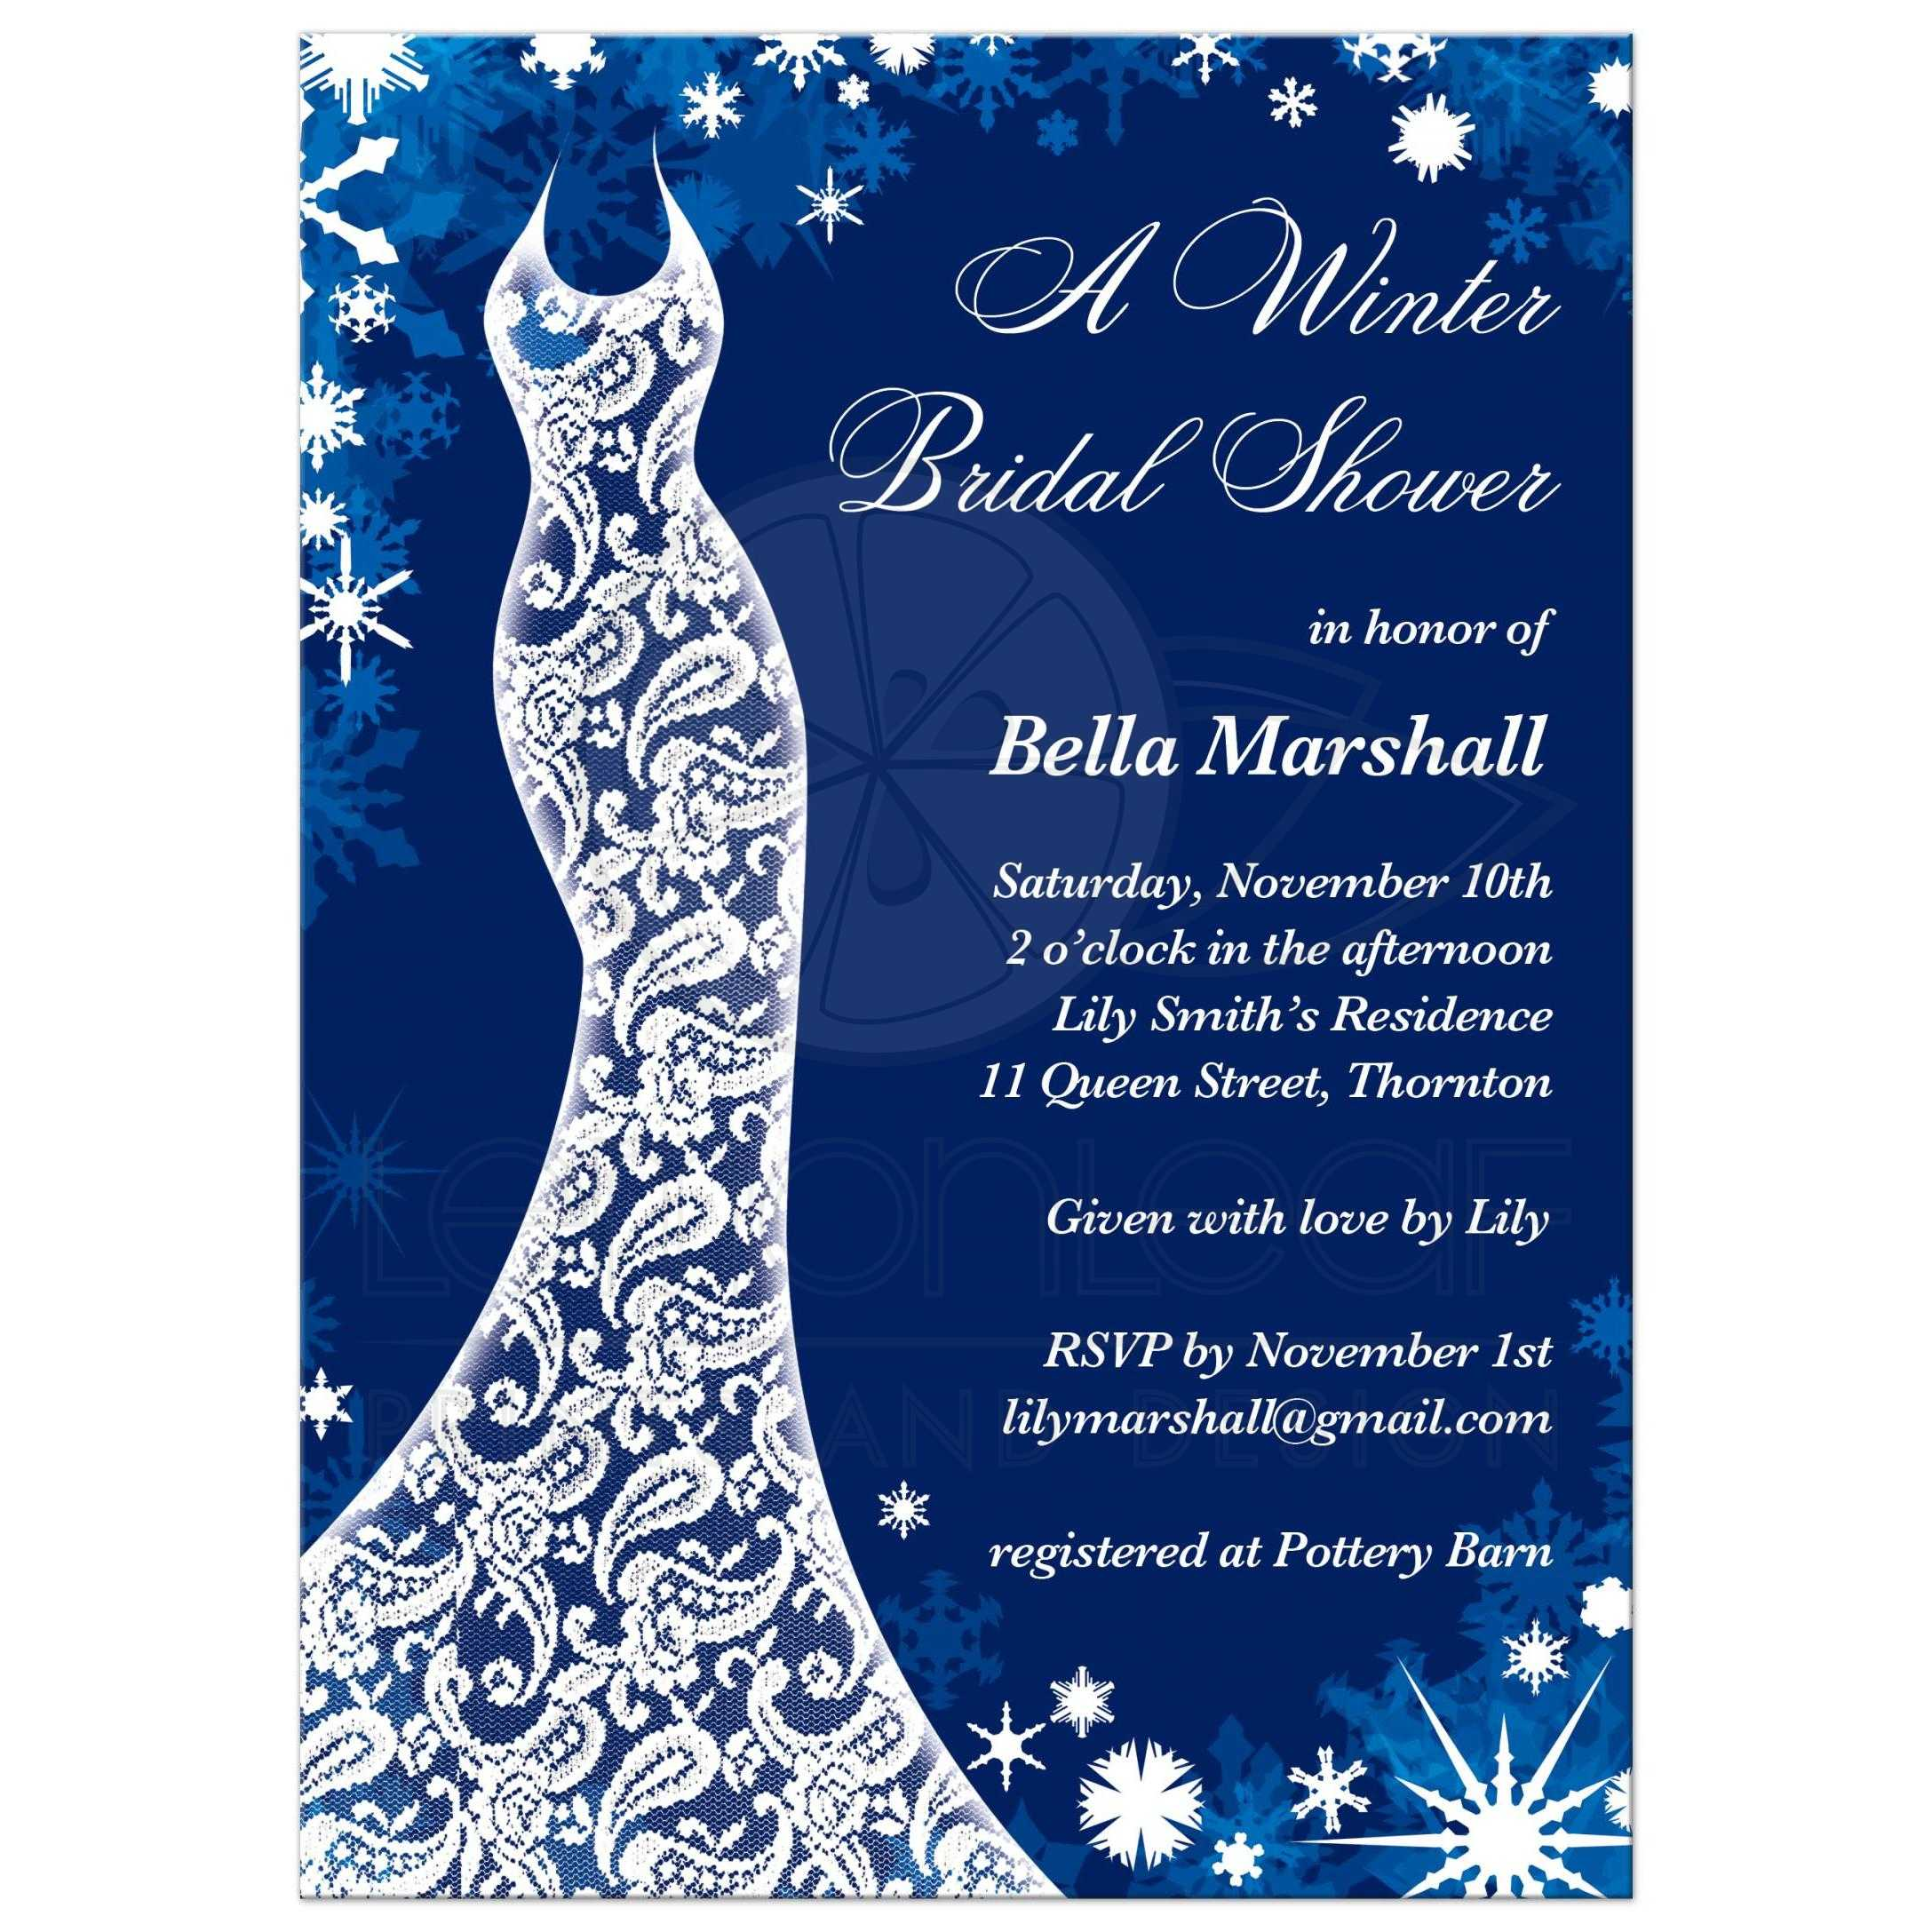 Bridal shower invitation beautiful winter in navy blue this winter bridal shower invitation is decorated with delicate snowflakes and a lacy wedding dress on filmwisefo Images